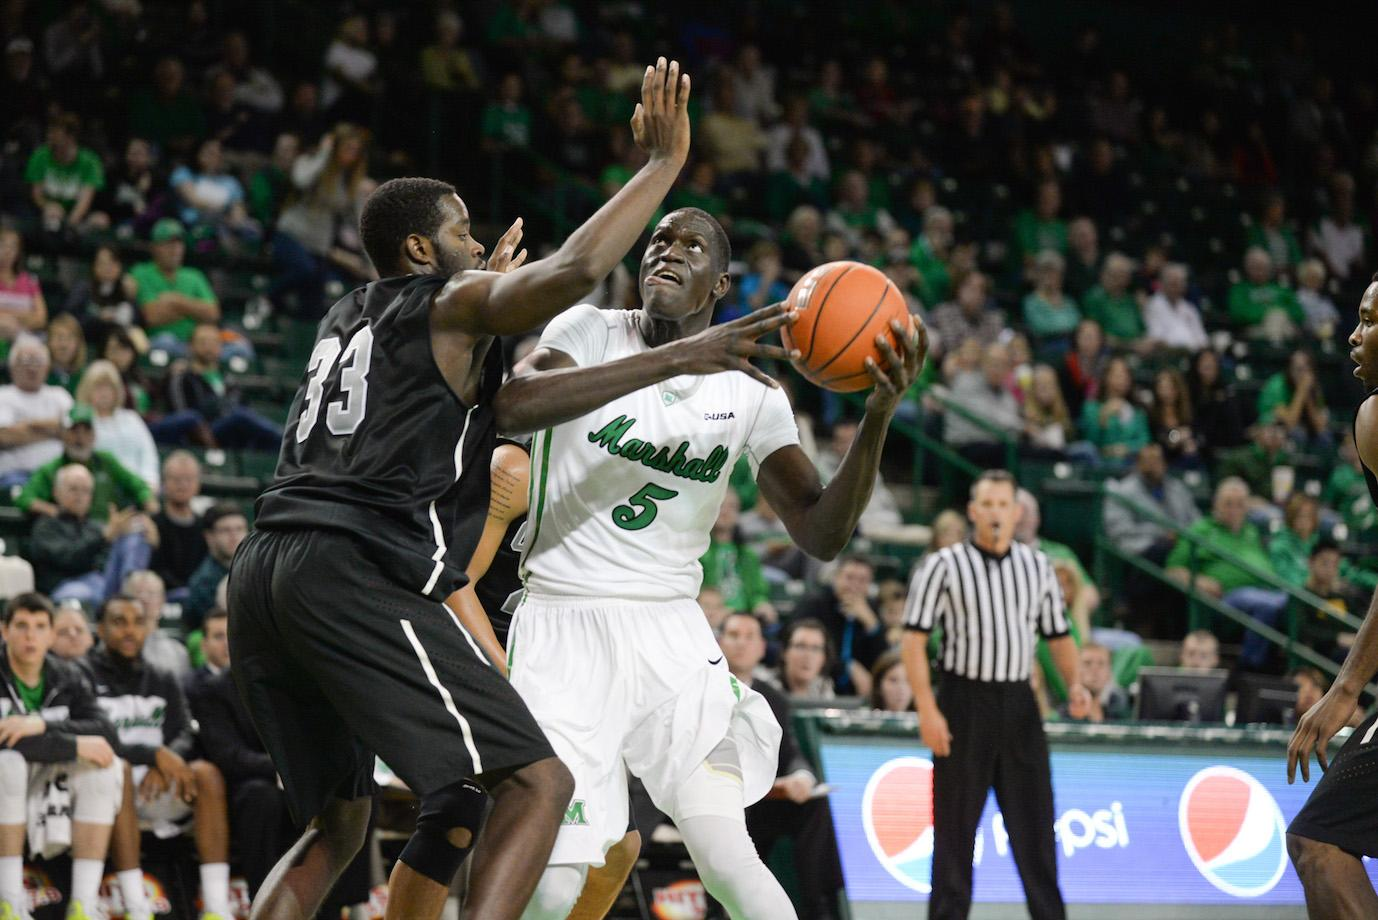 Marshall's Cheikh Sane holds as Herd men's basketball takes on Concord University in an exhibition game Nov. 8 at the Cam Henderson Center.